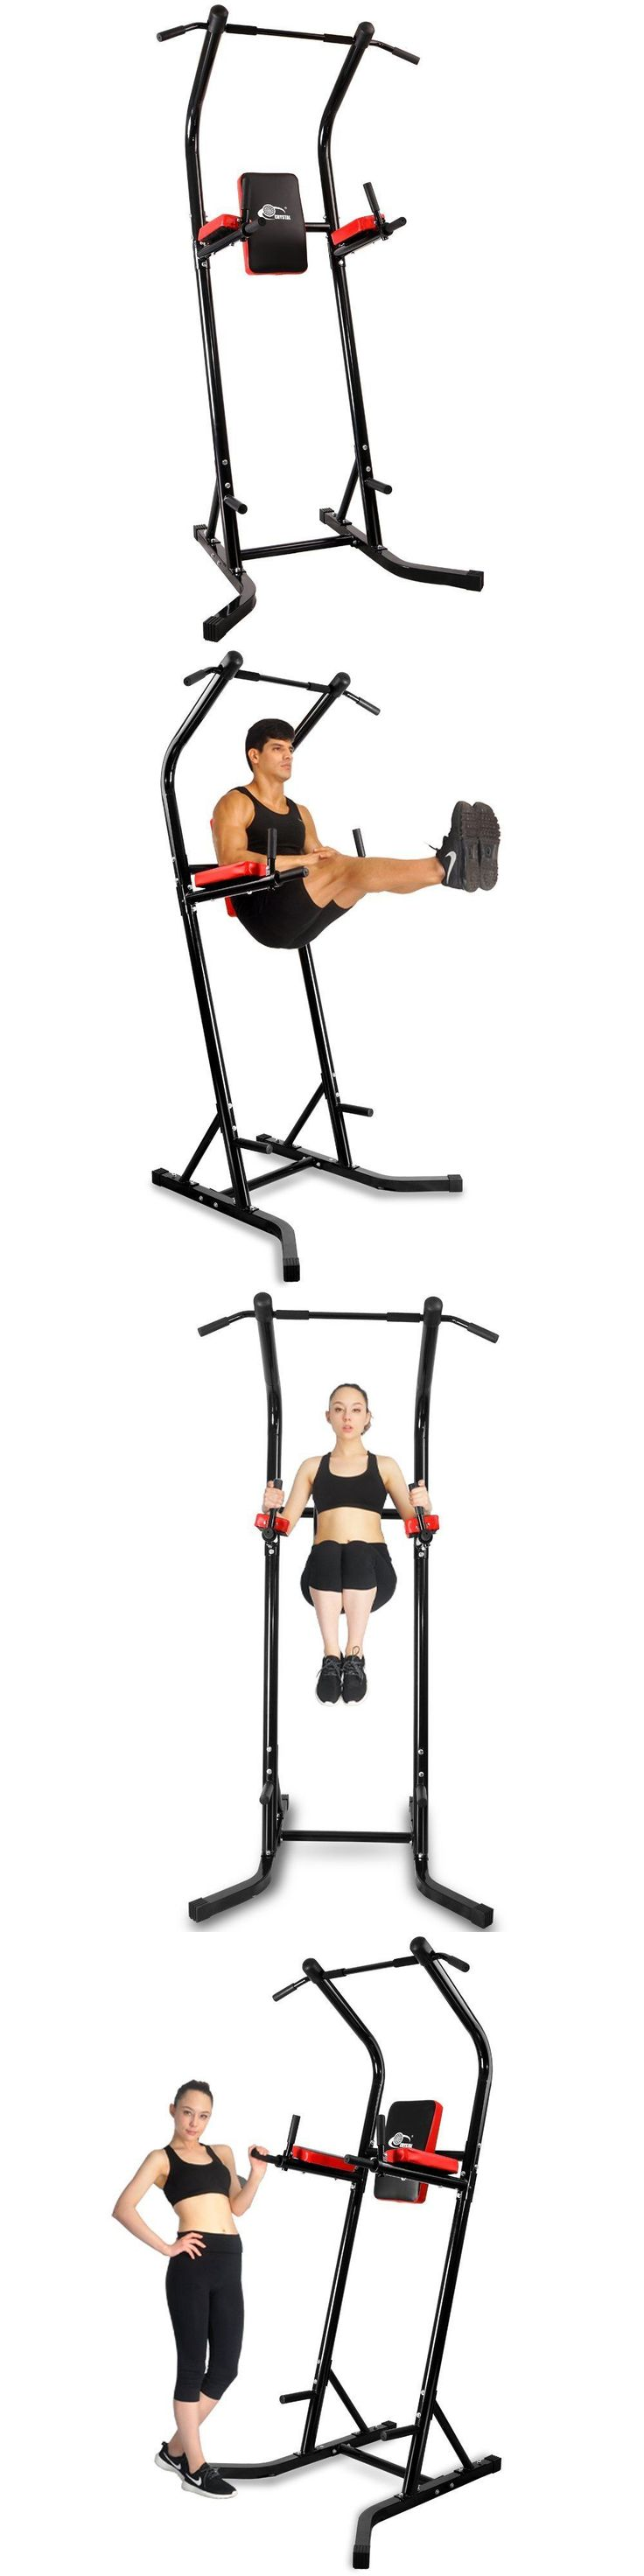 Pull Up Bars 179816: Chin Up Bar Sports Equipment Power Pull Up Bar Tower Standing Dip Station Black -> BUY IT NOW ONLY: $131.04 on eBay!